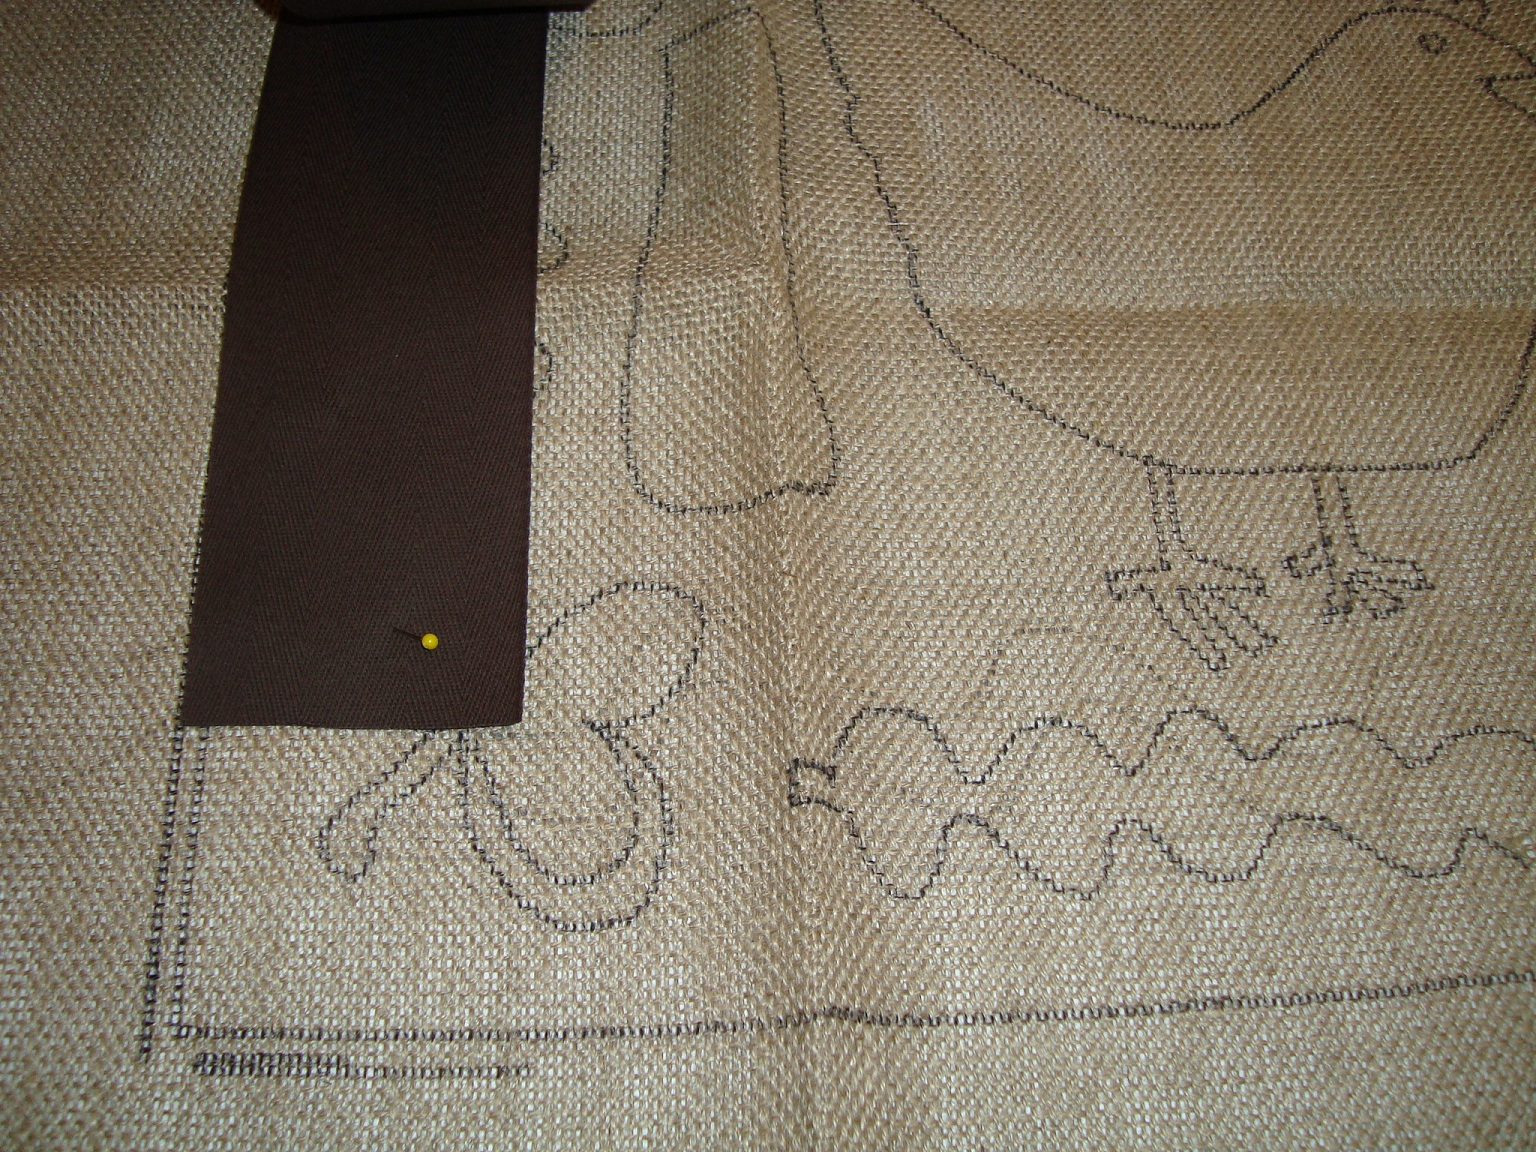 Saundra Of Woodland Junction Binding The Lions Rug Tutorial